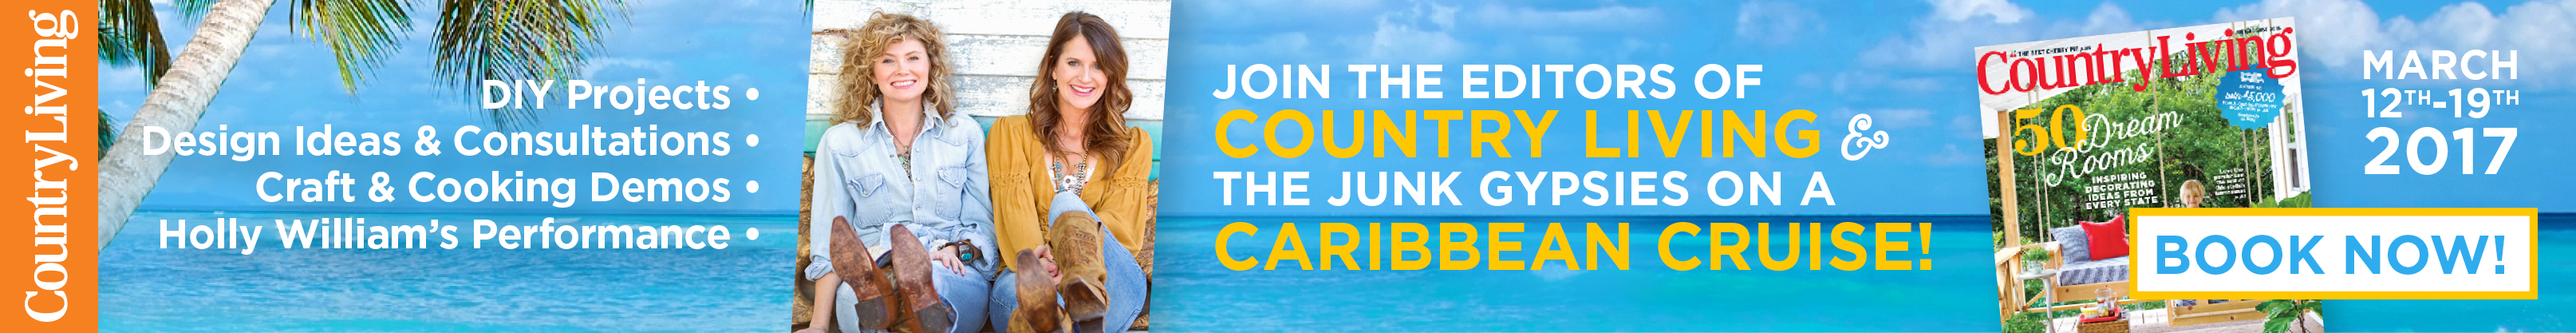 Join the Country Living Cruise!